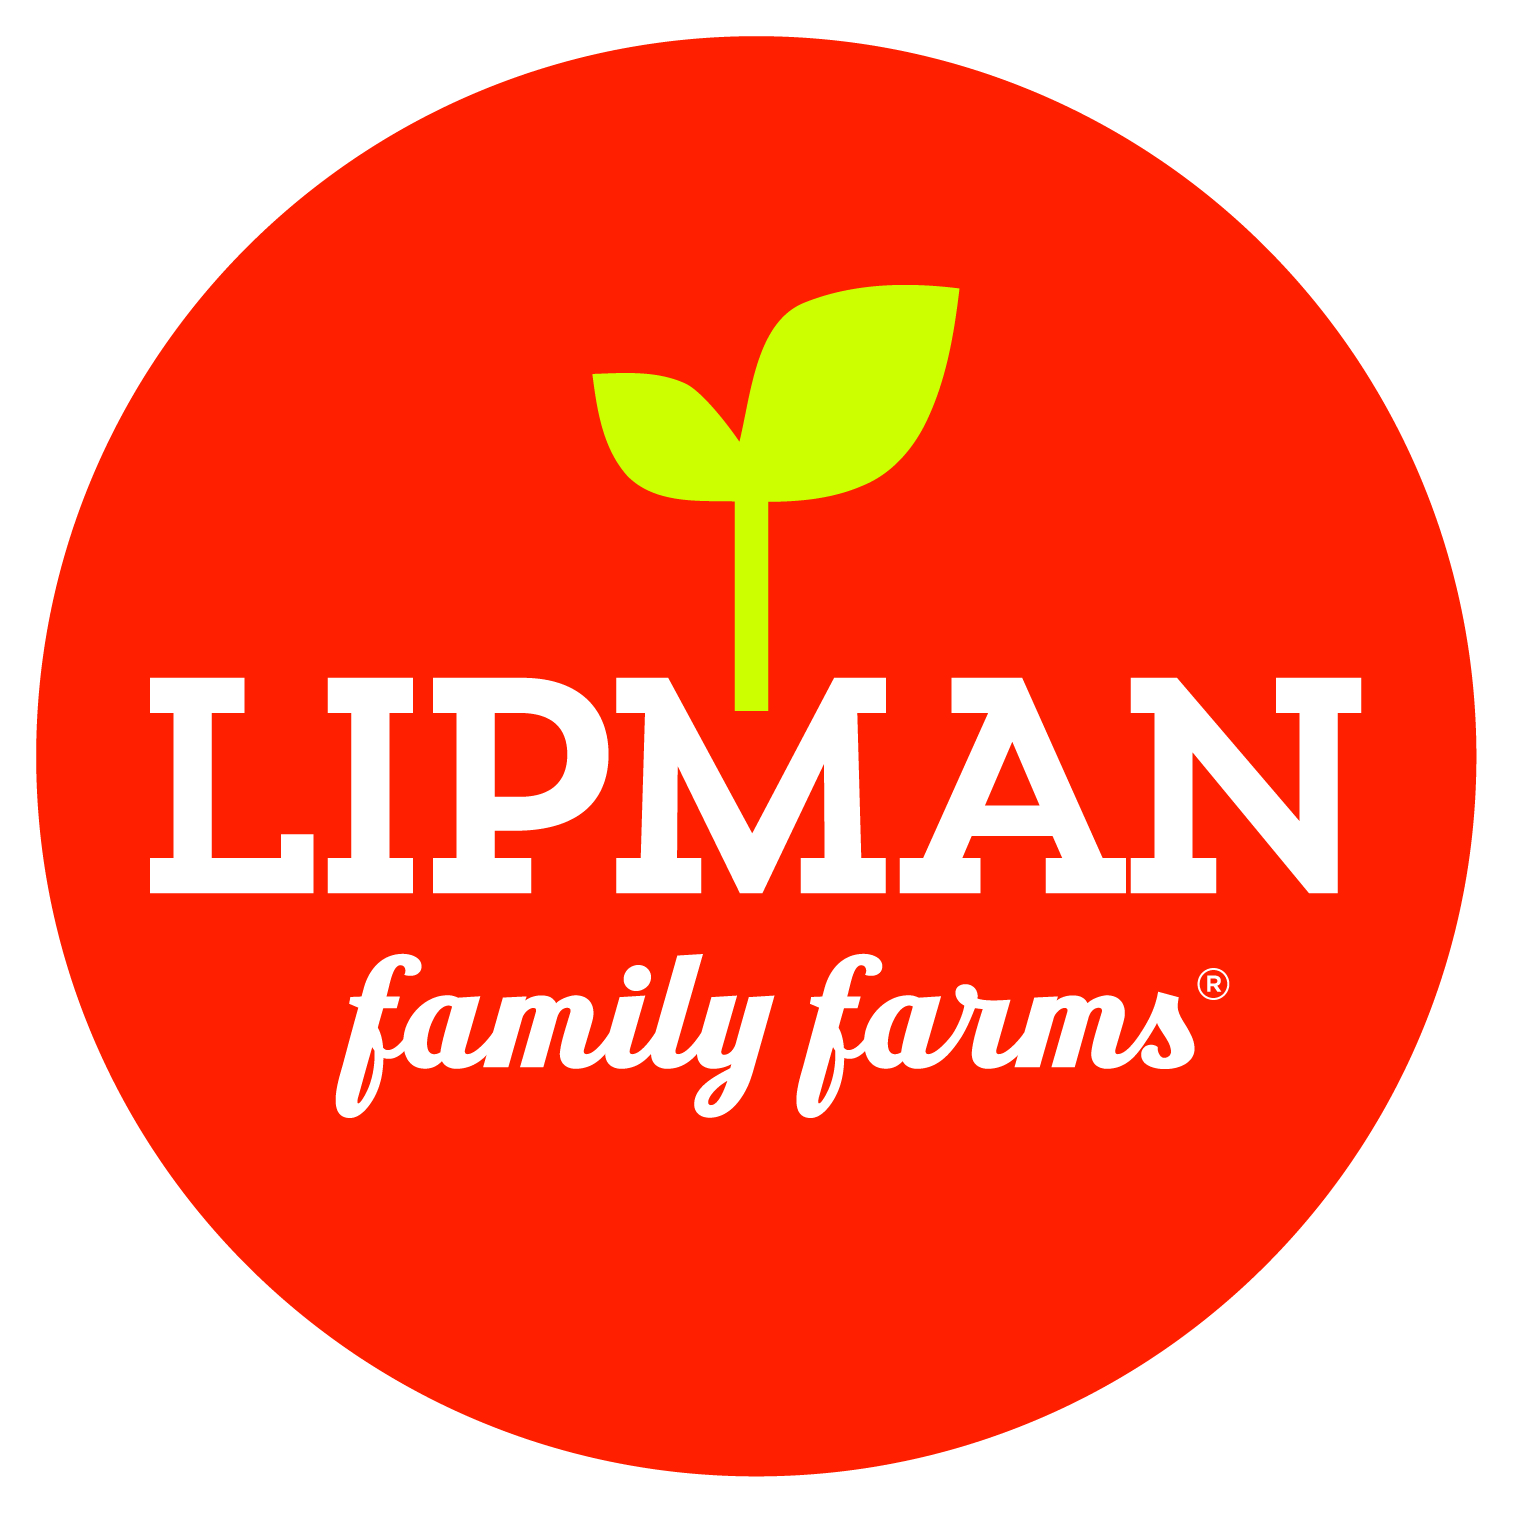 Lipman Family Farms logo.JPG